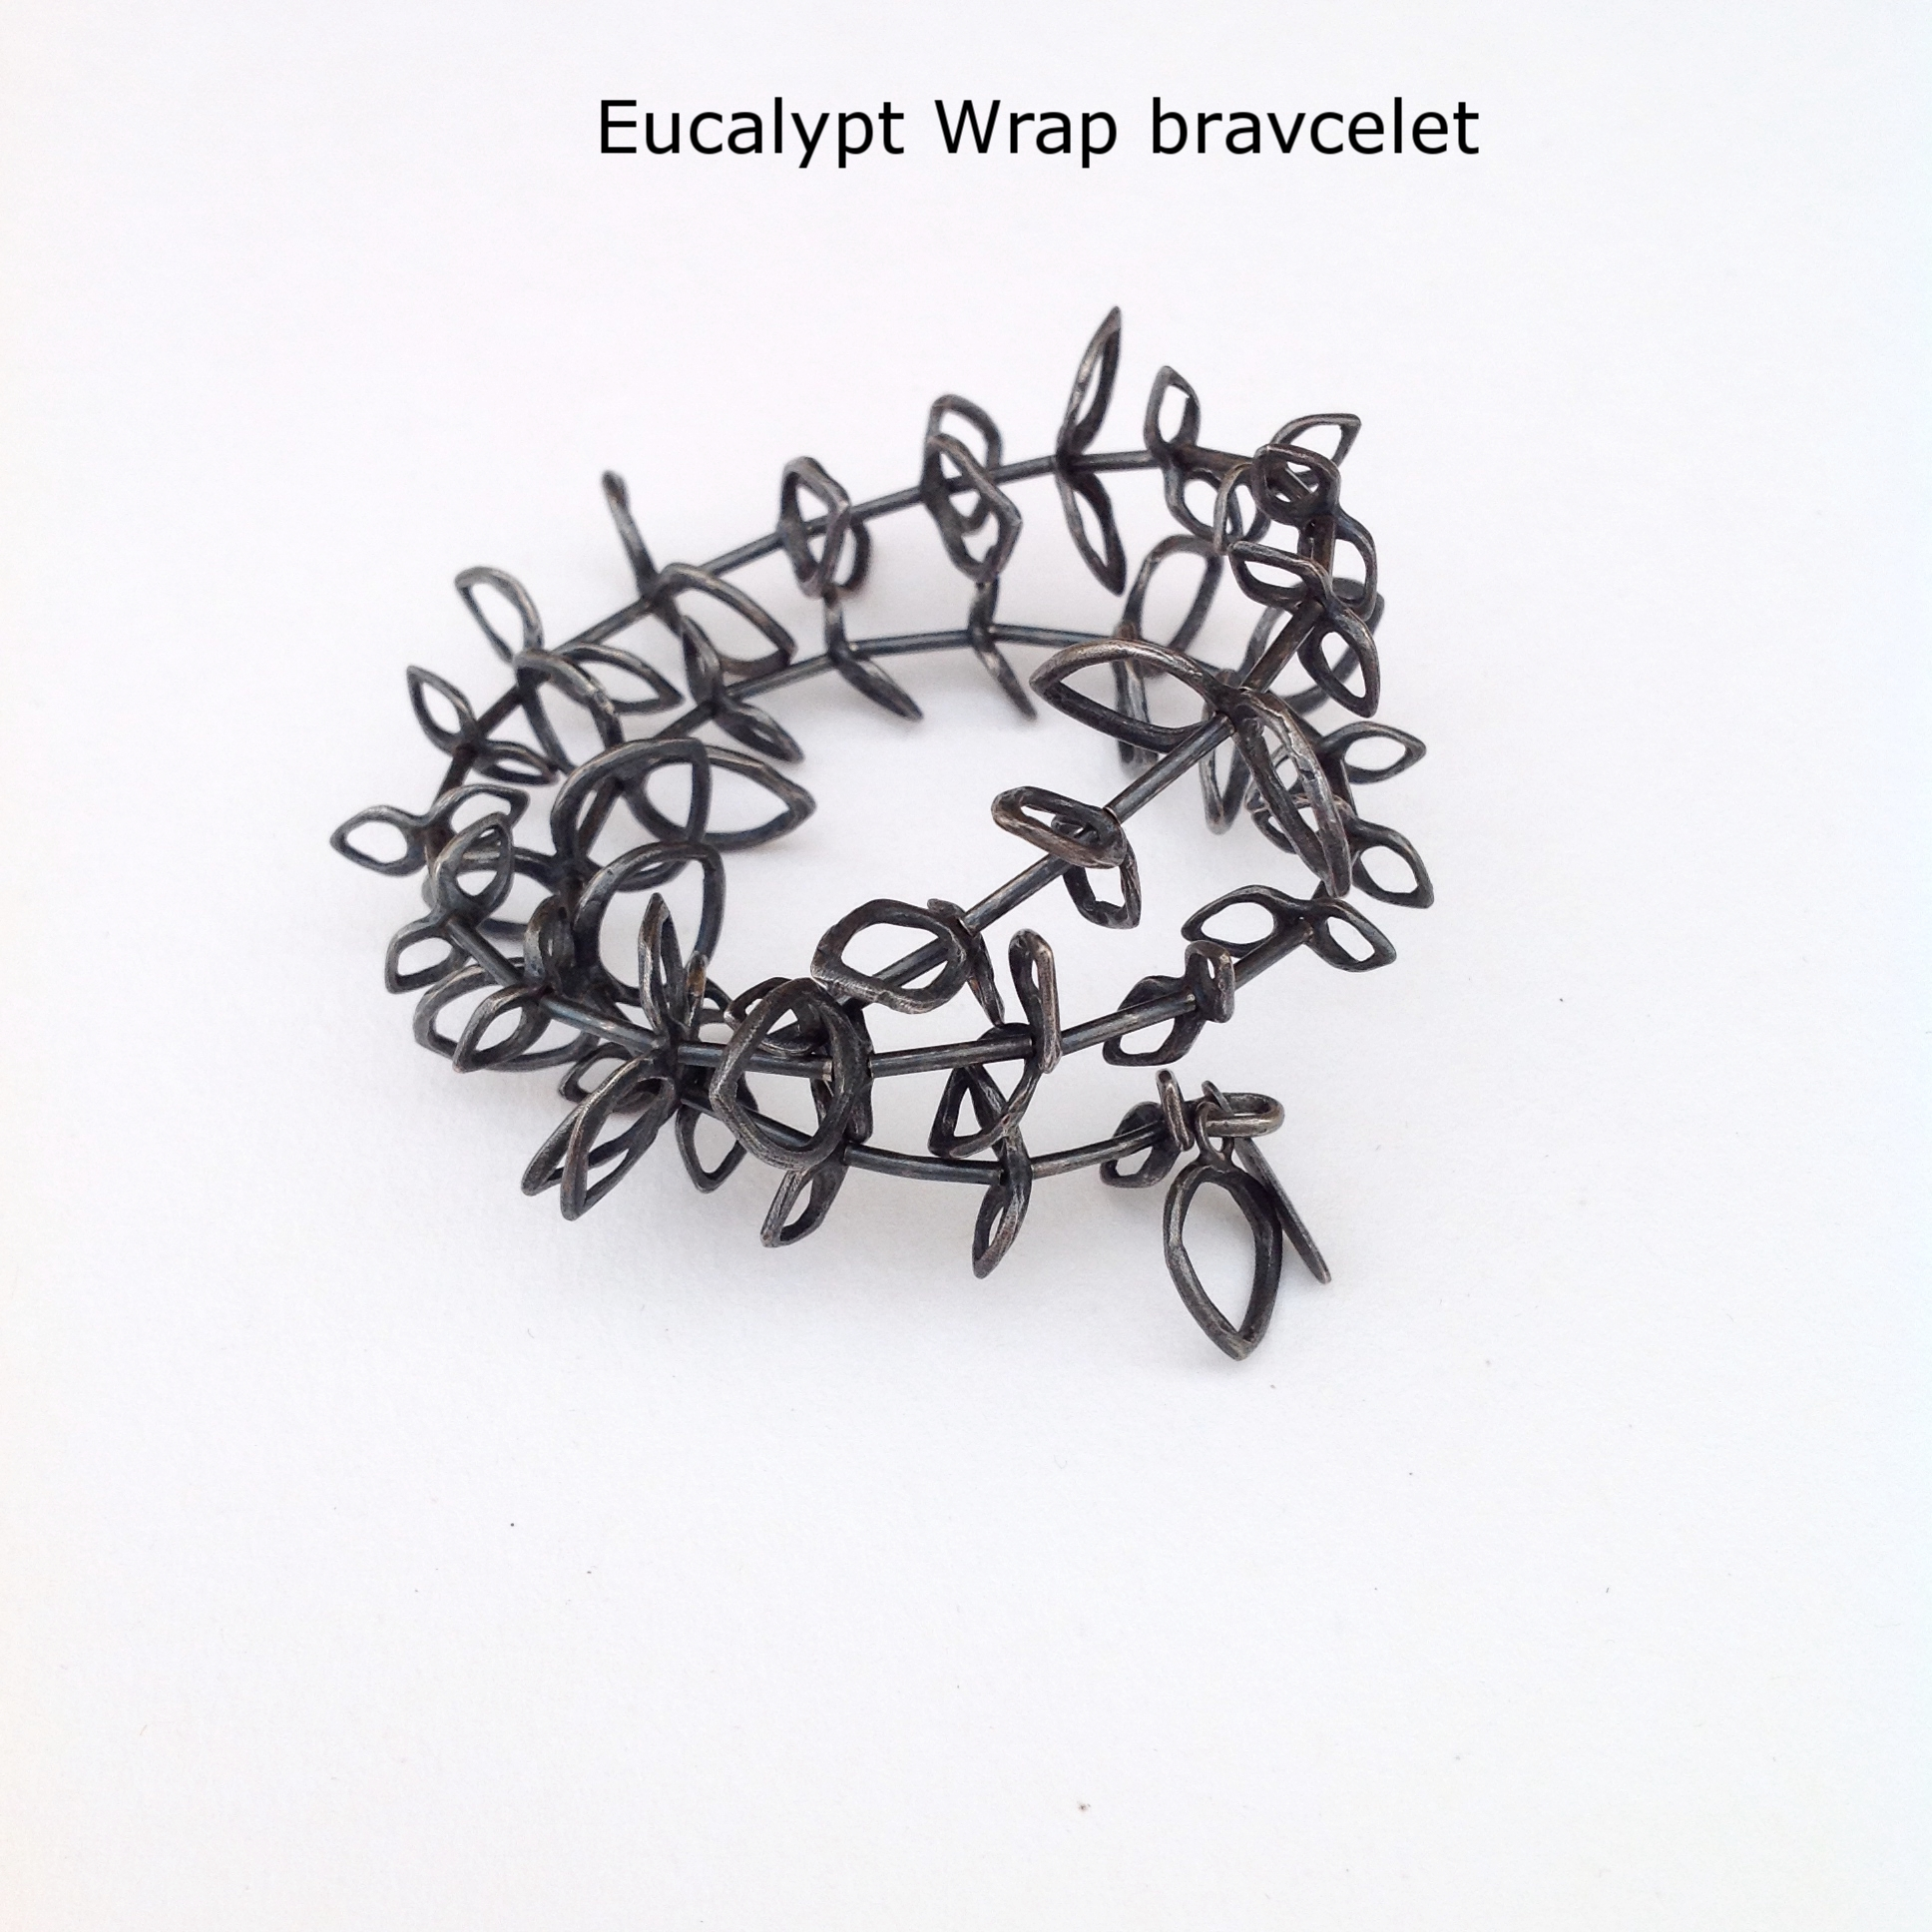 Oxidized sterling with memory wire, Eucalypt inspired bracelet adjustable size by Valerie Mitchell.